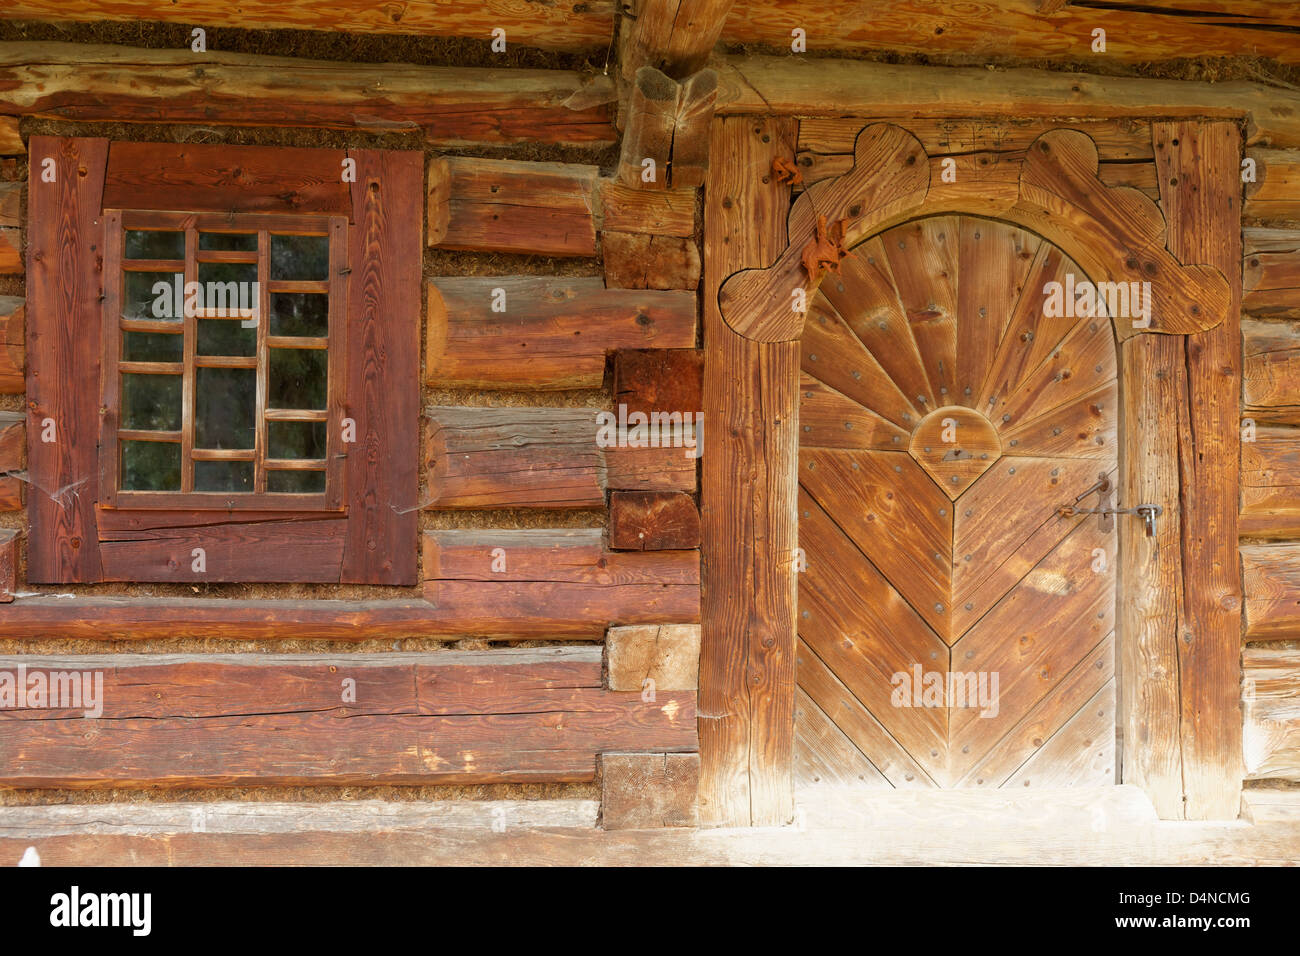 Door and window of peasants house, Orawa Ethnographic Museum, Malopolska, Poland - Stock Image